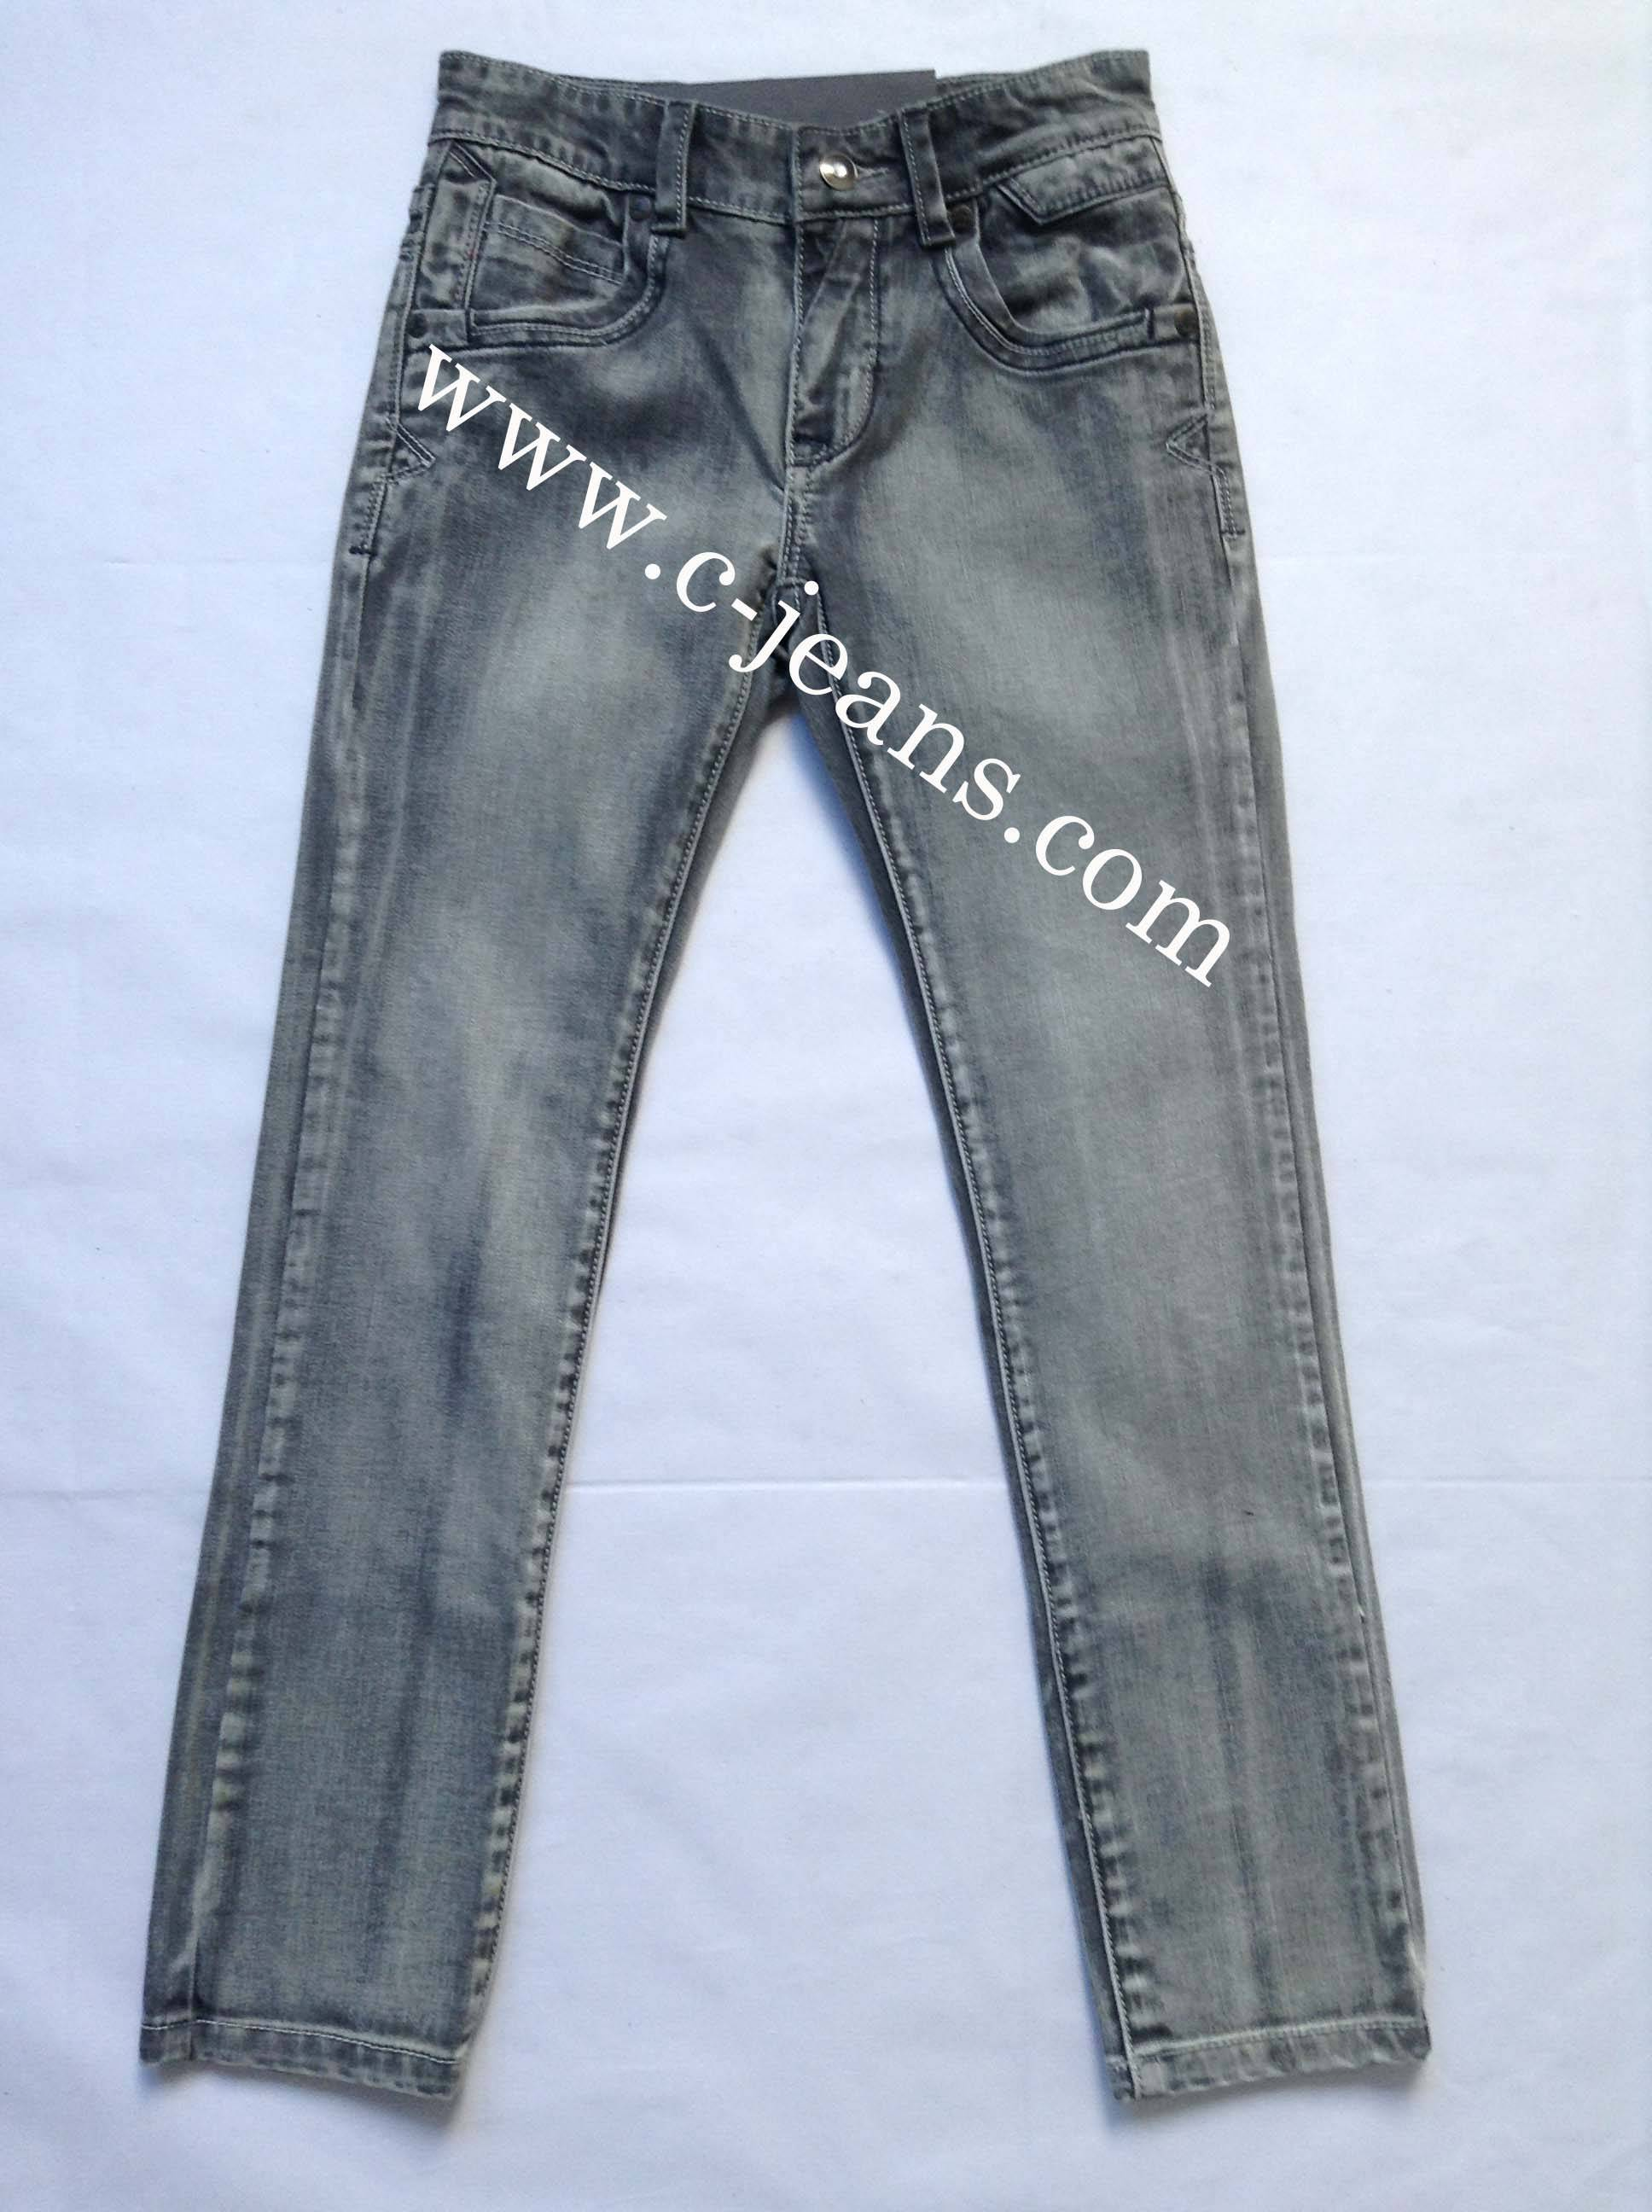 Stylish Lady's Jeans. 2014 Latest Design Skinny Lady Jeans, Fashion Woman Jeans